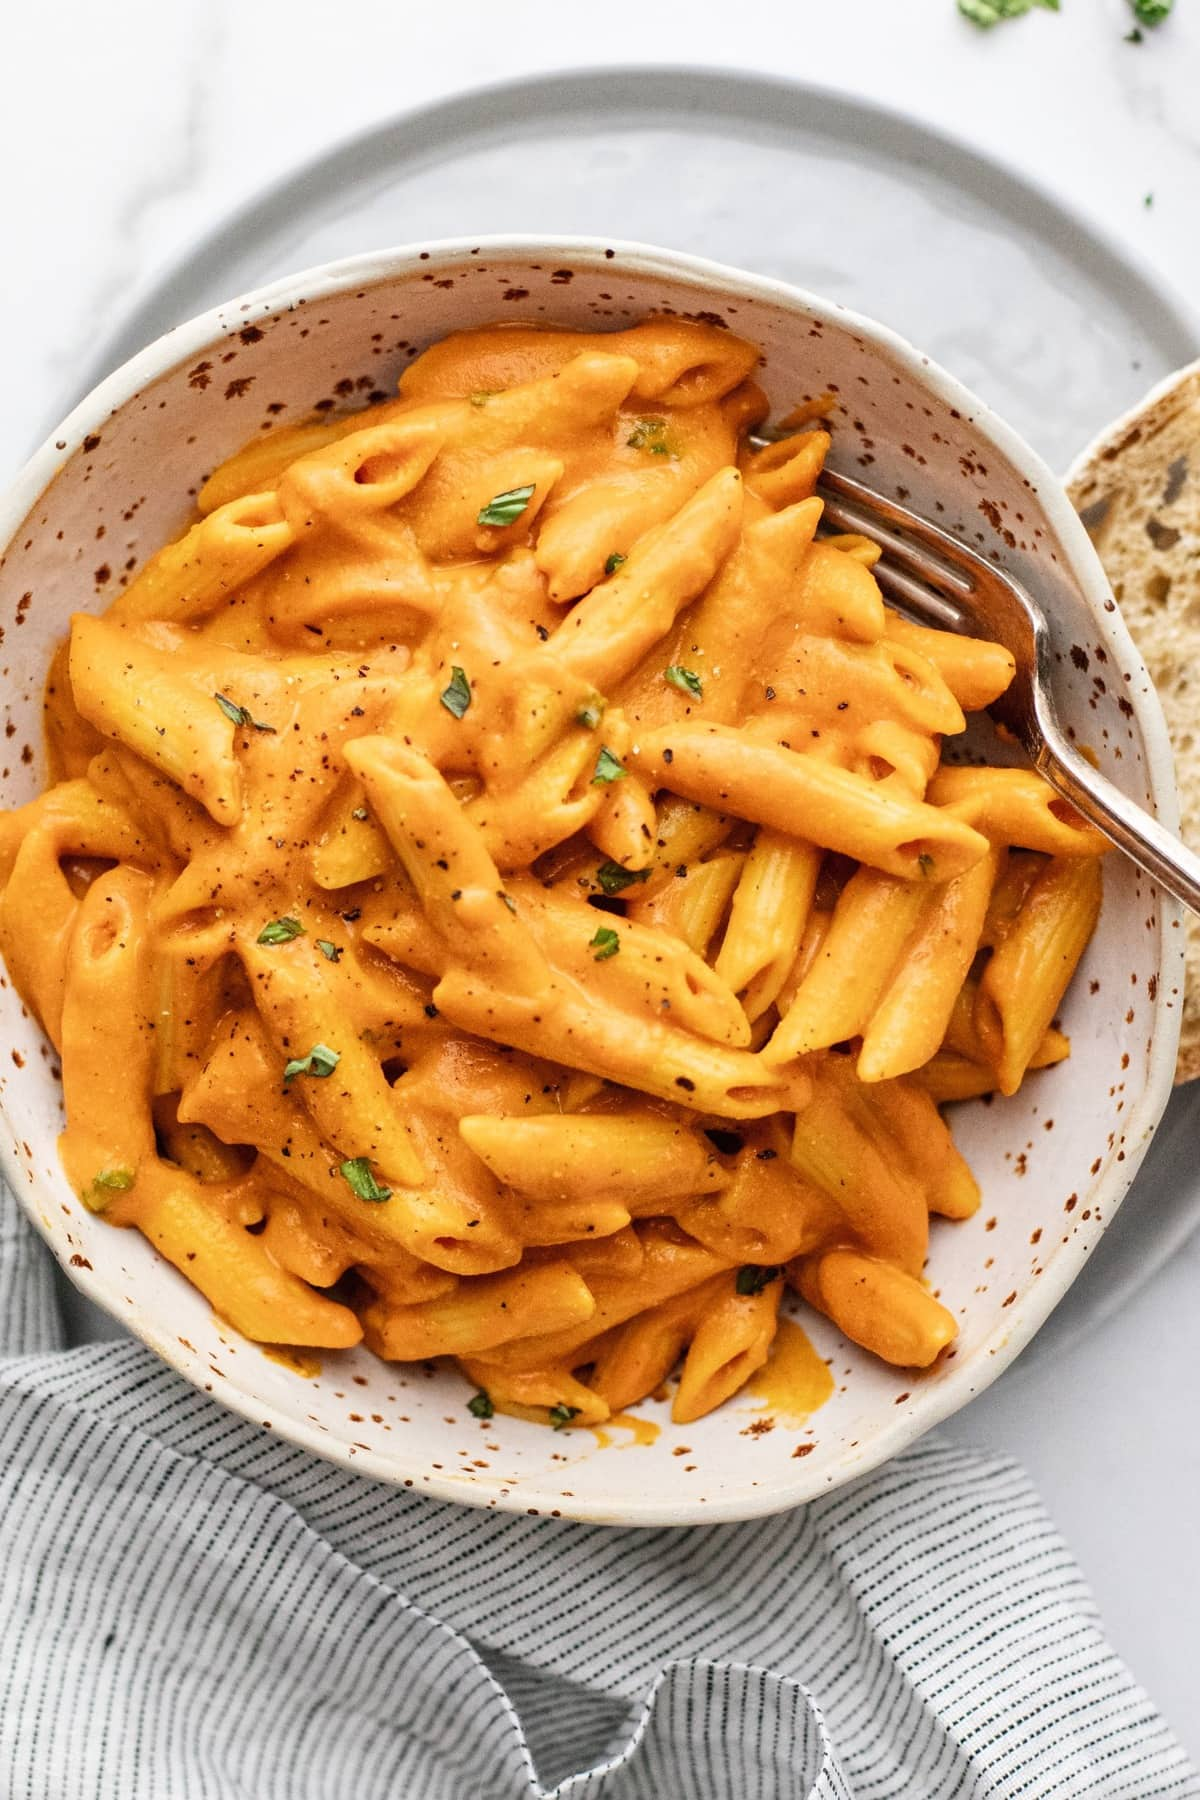 Ceramic speckled bowl on gray plate with penne pasta in a bright orange pepper sauce in it.